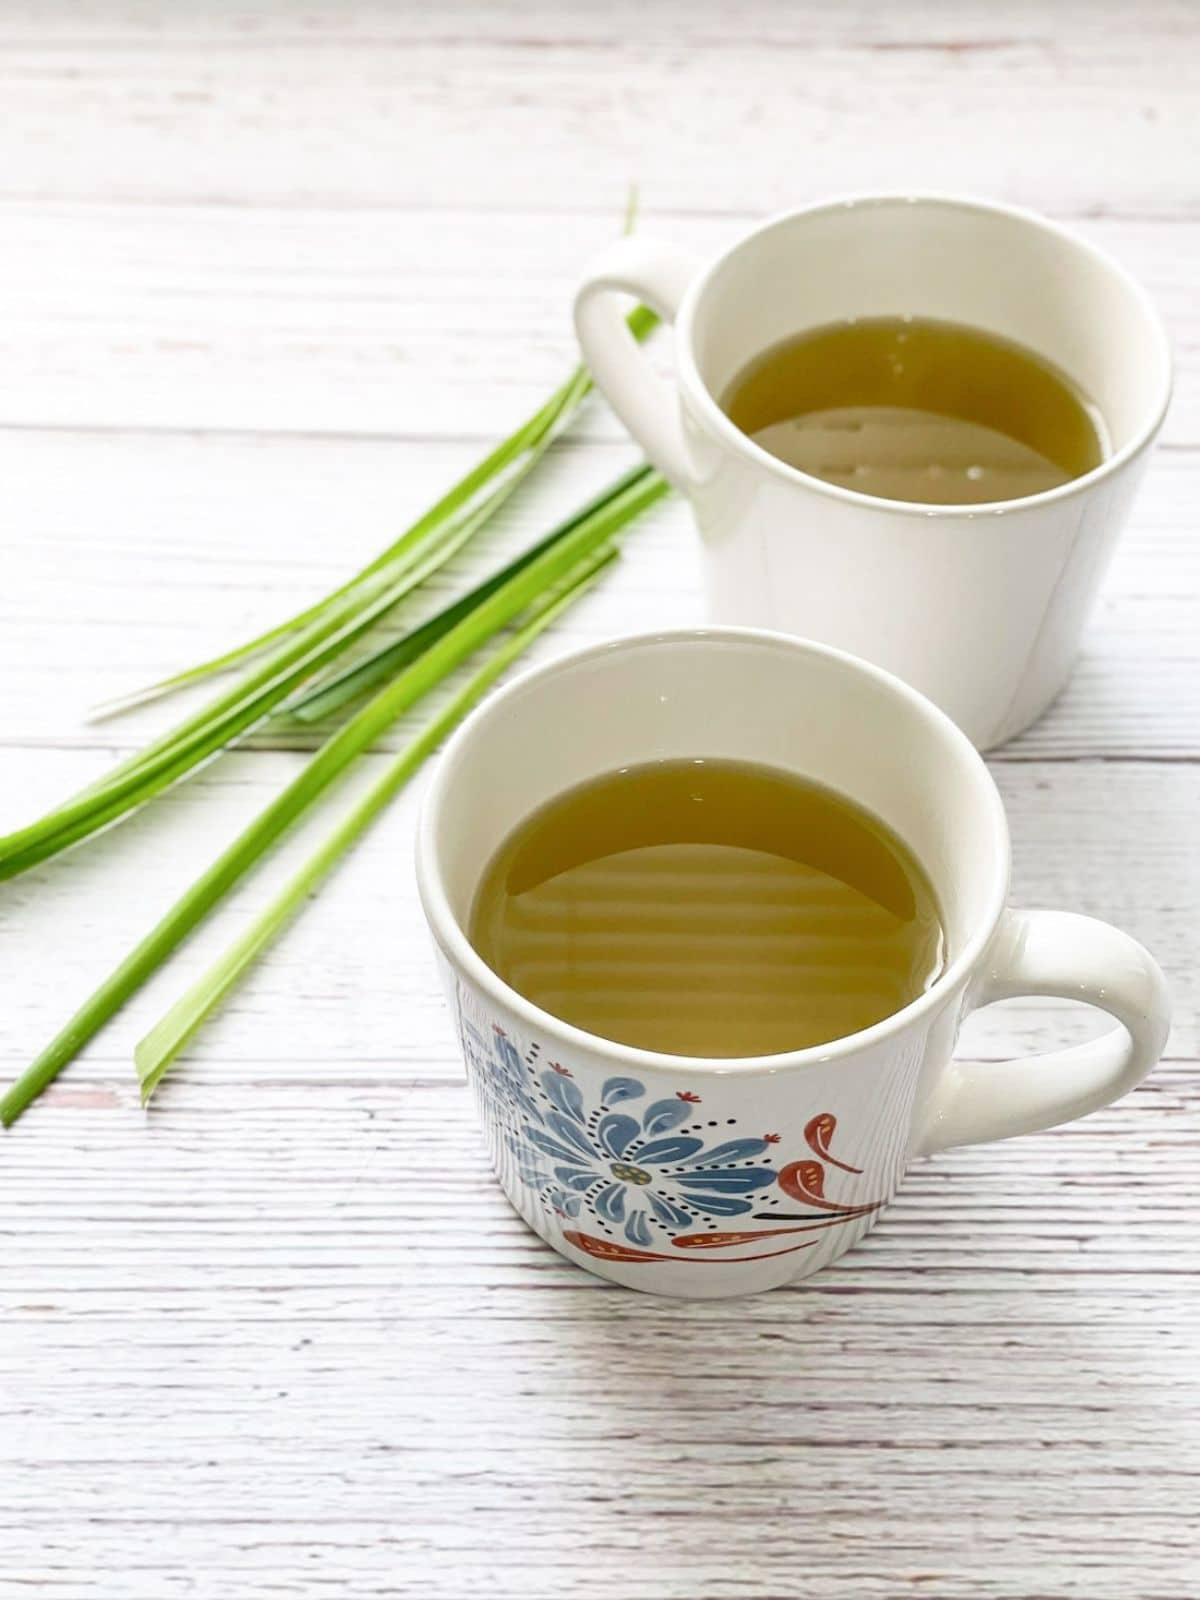 Two cups of lemongrass tea is on the table.